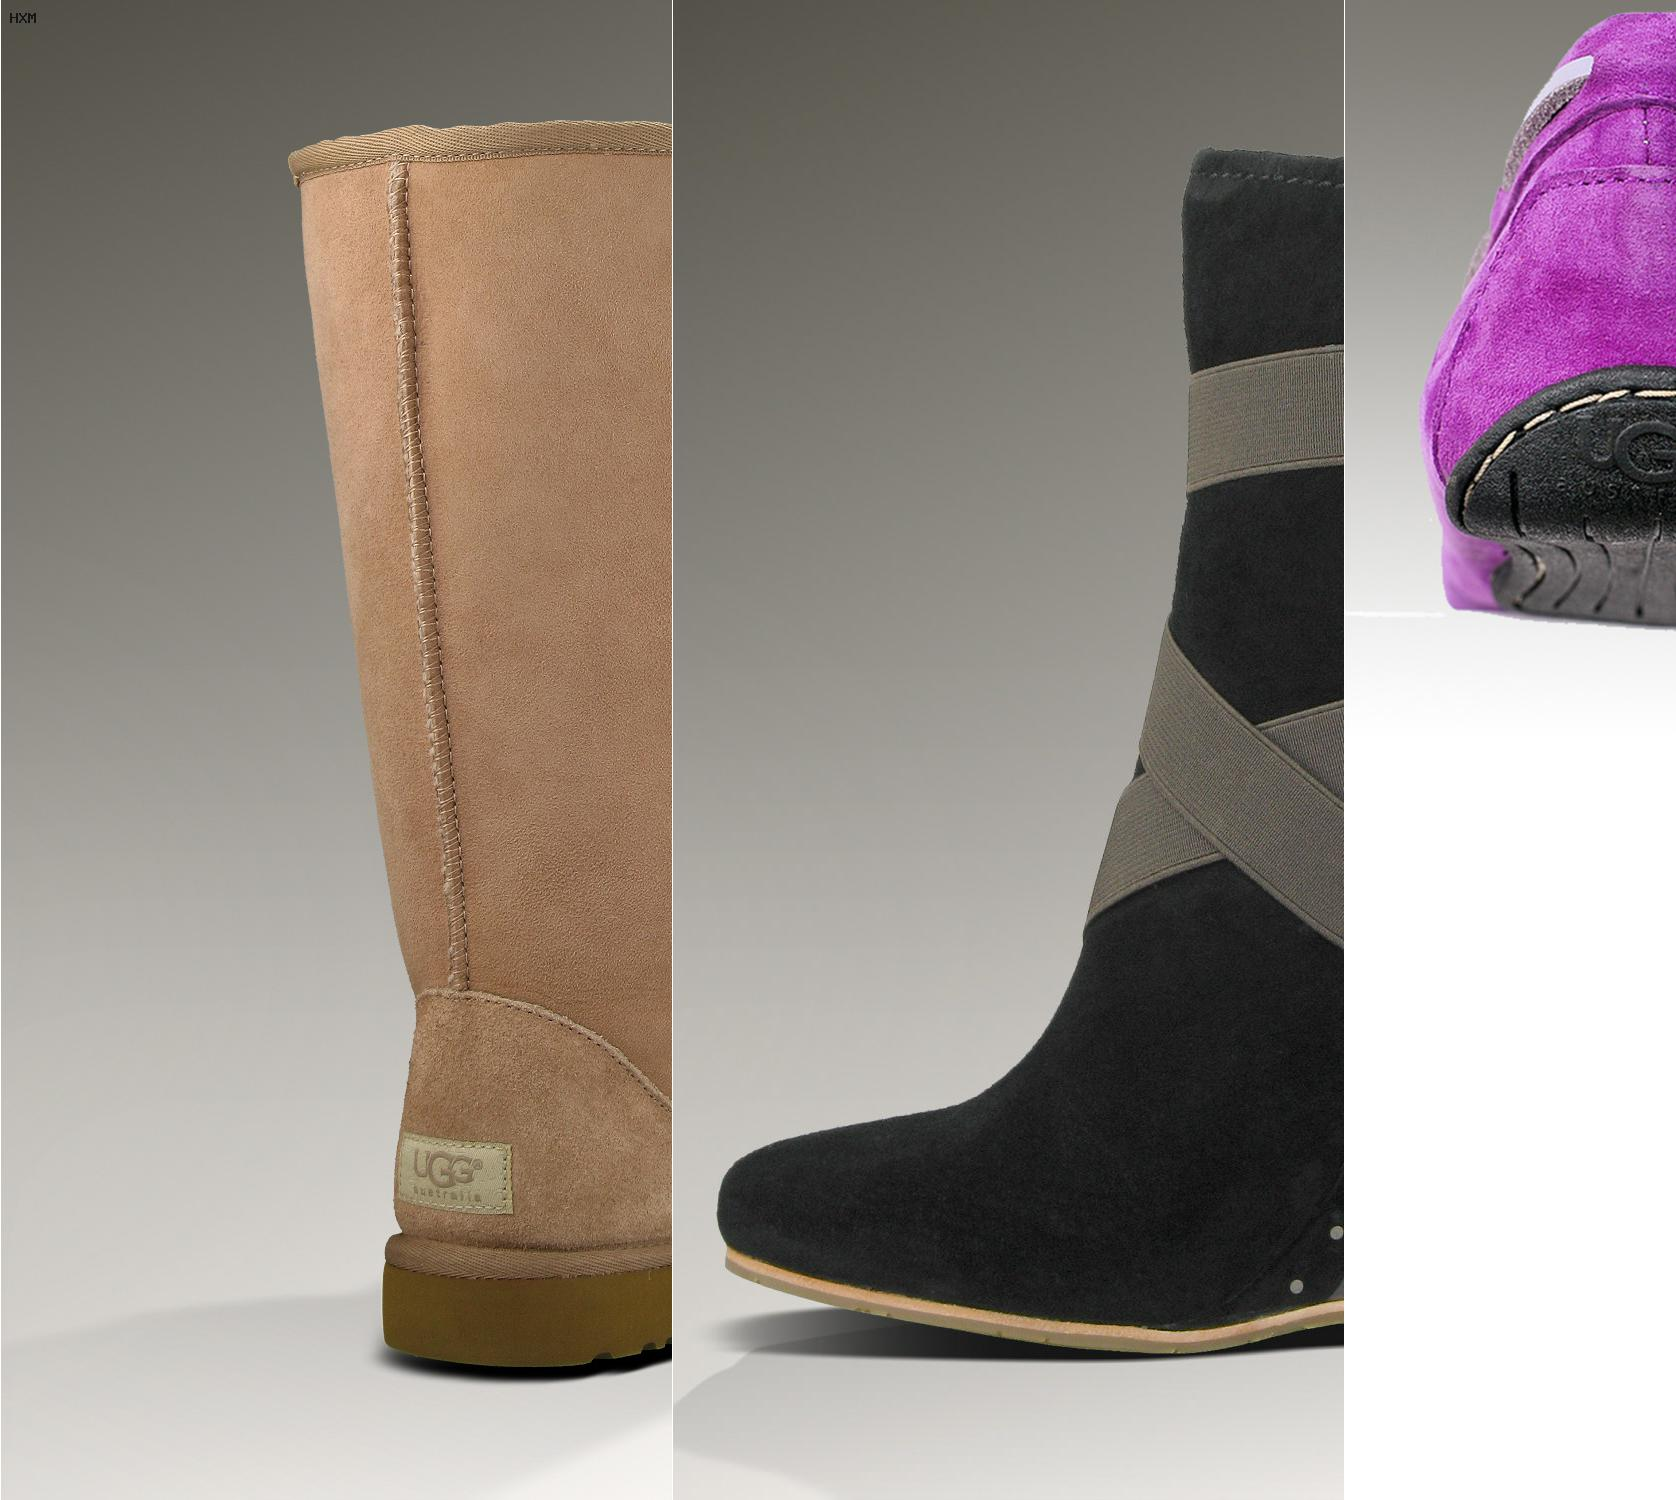 ugg waterproof opinioni